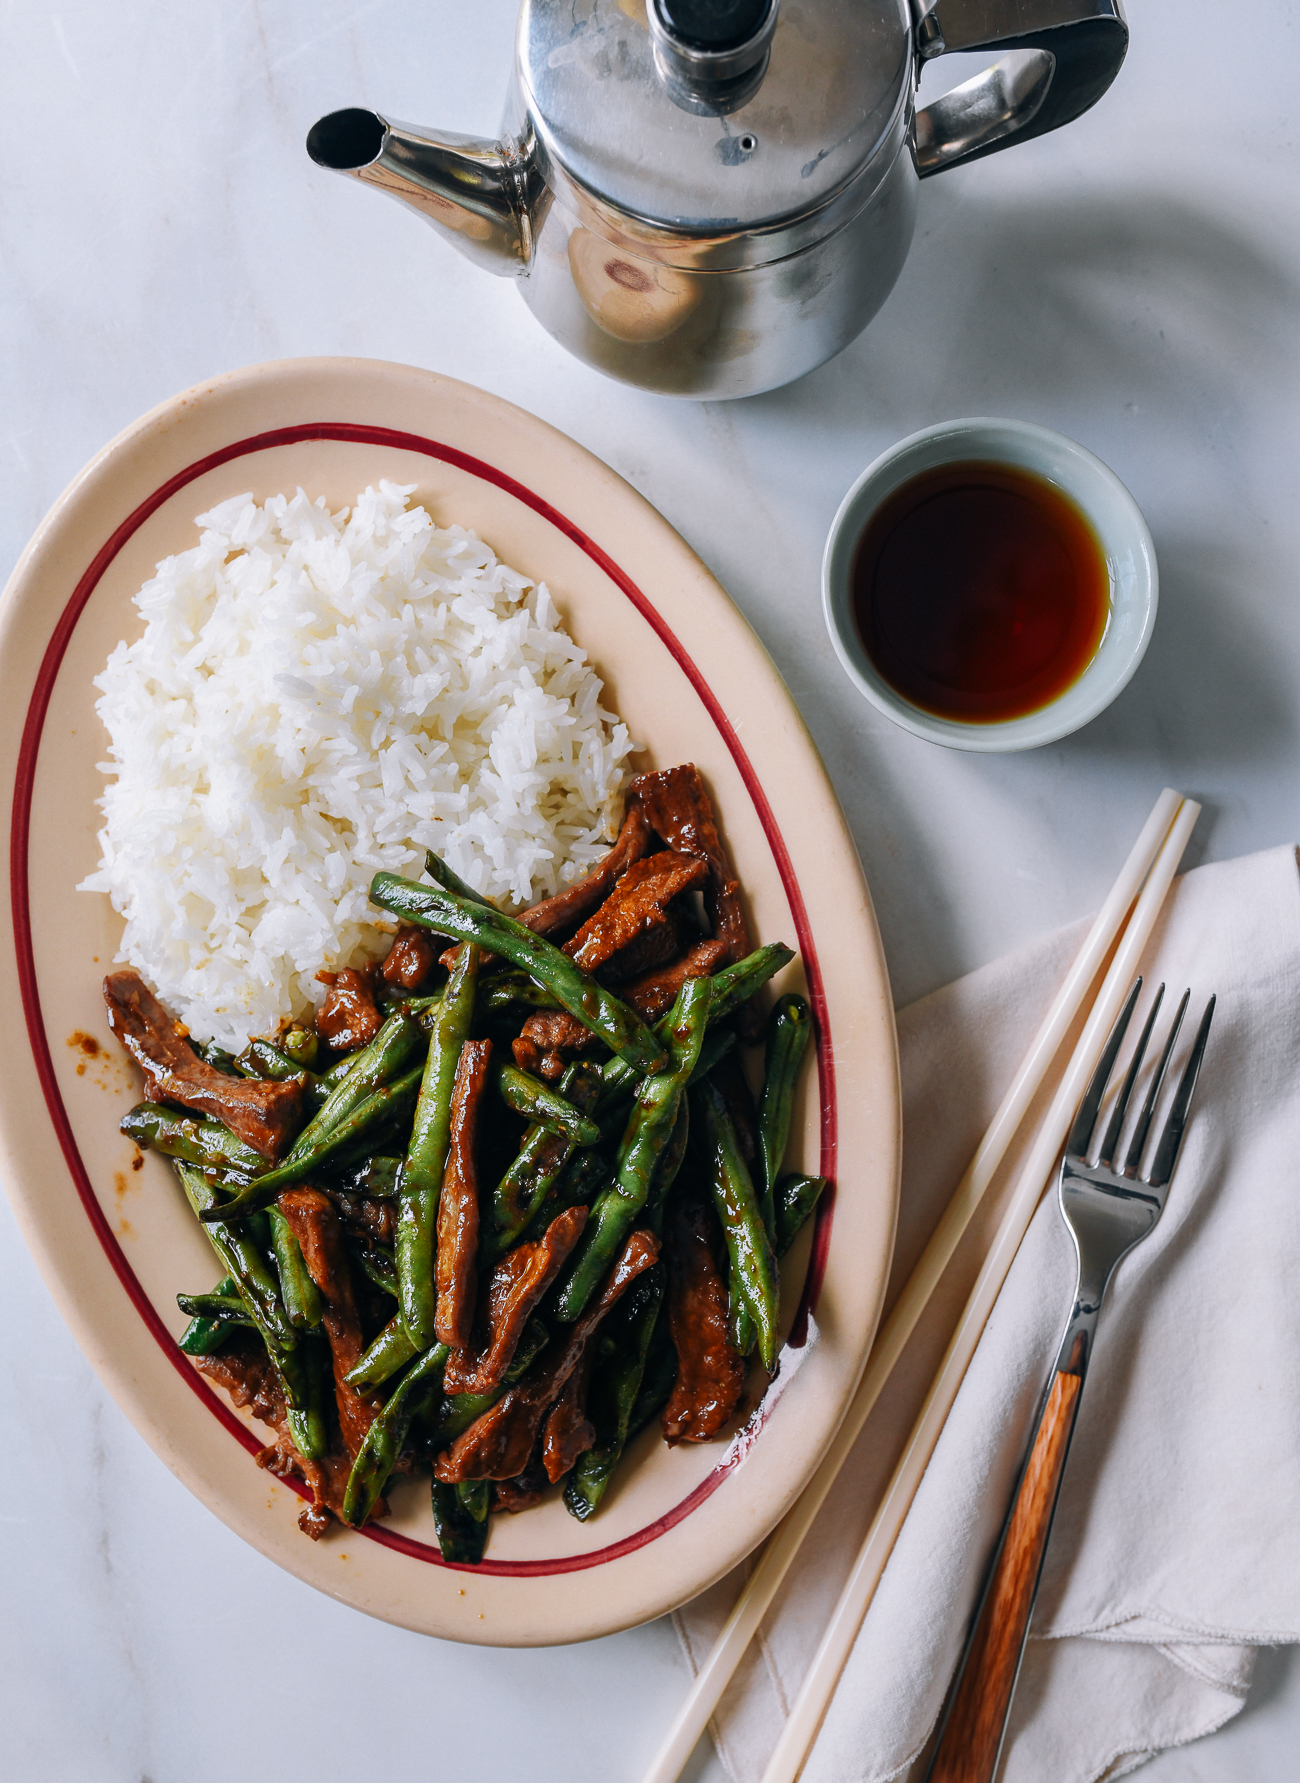 Chinese Beef and String Beans Stir-fry Recipe